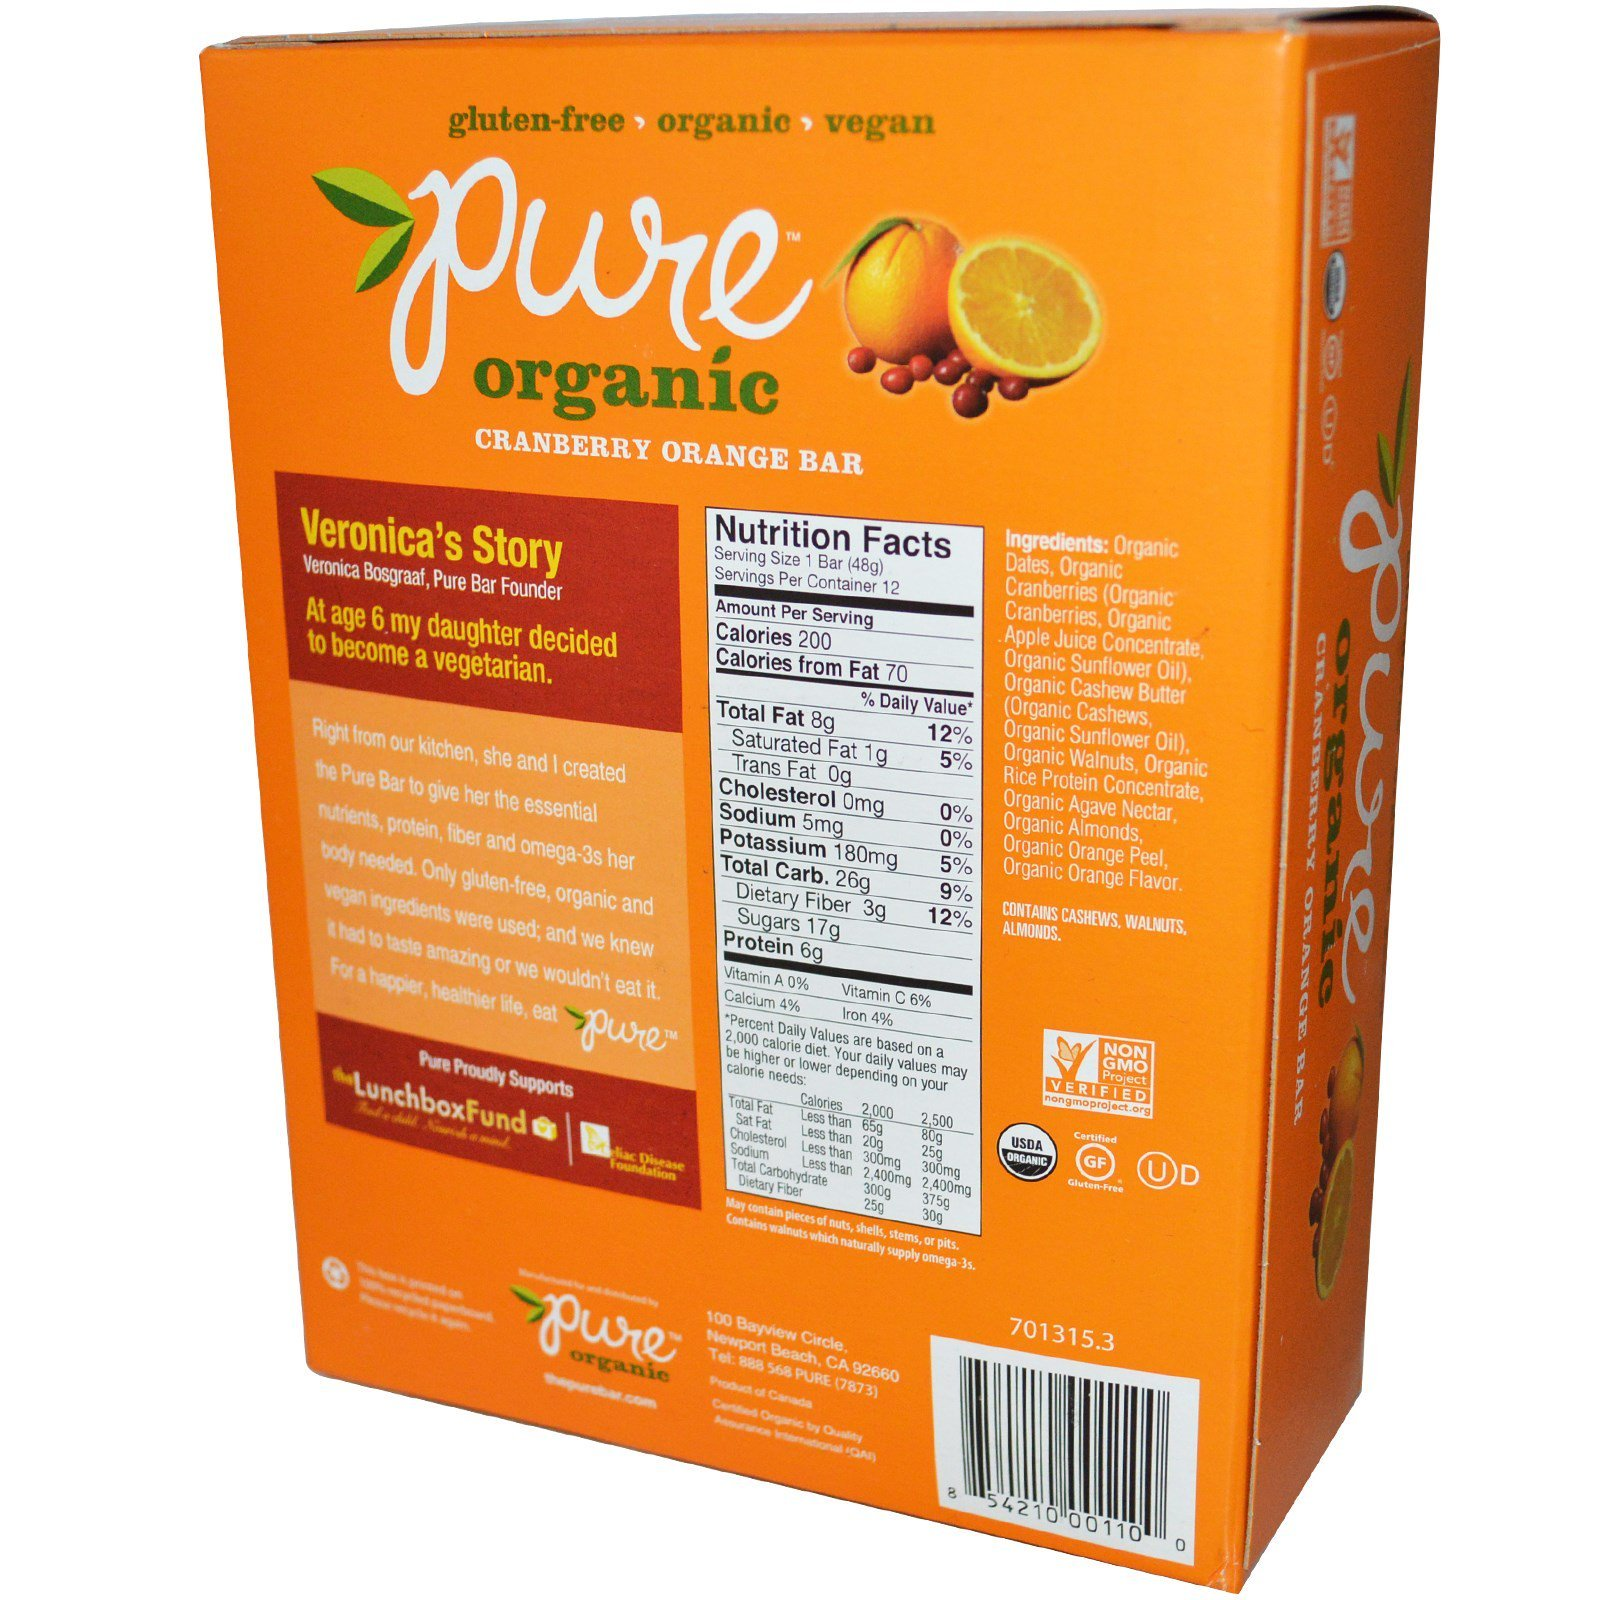 Pure organic cranberry orange bar